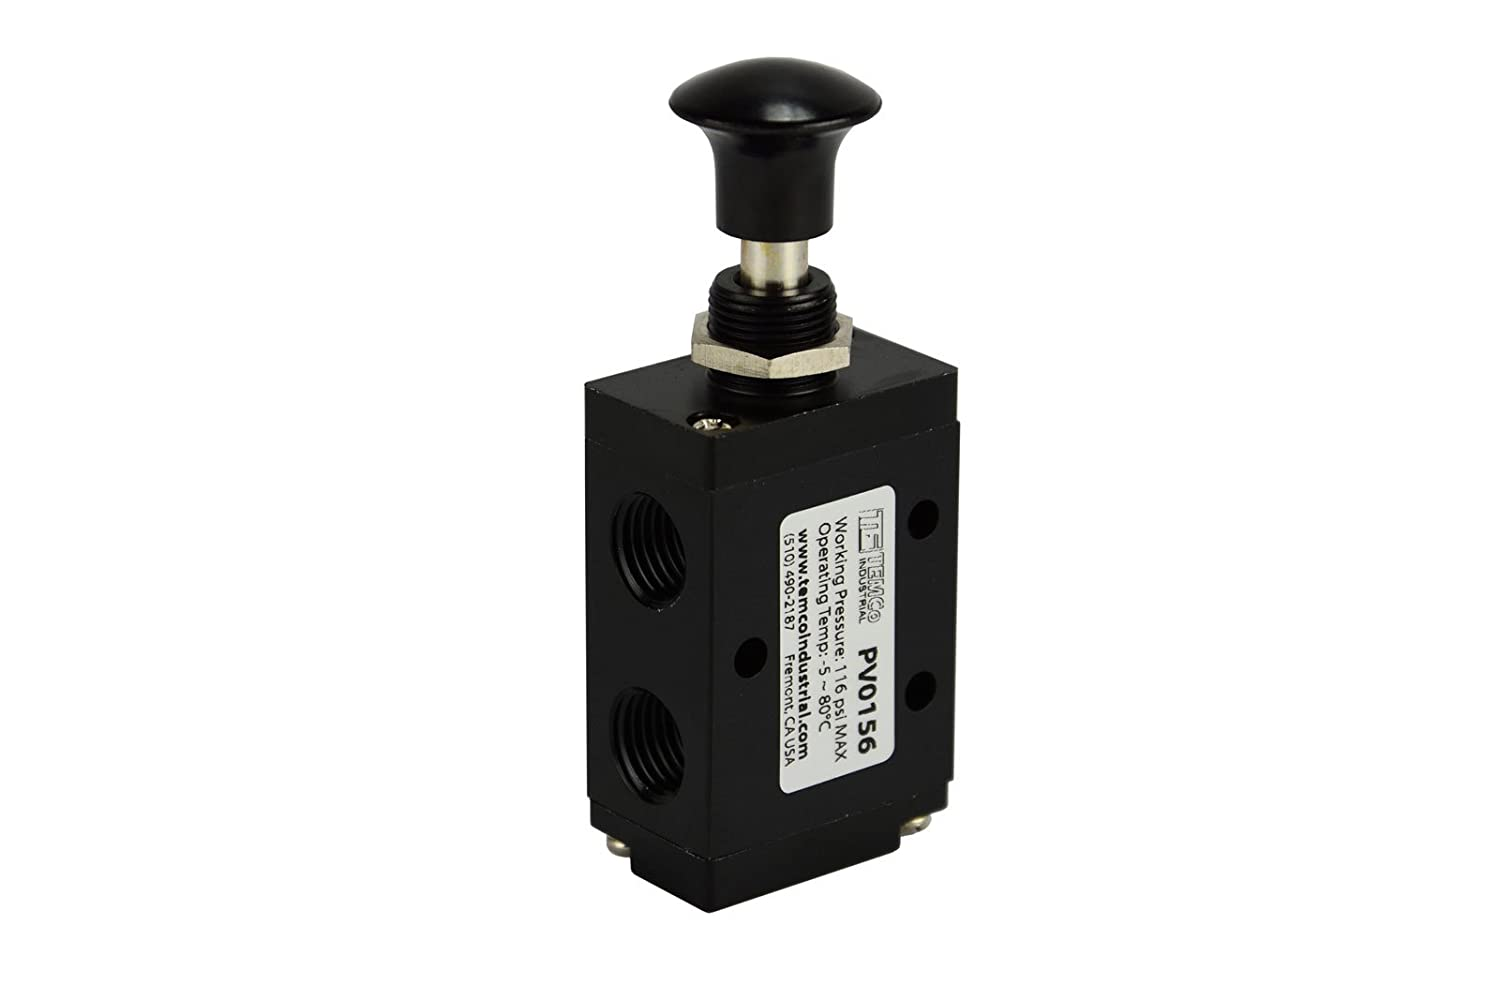 Hand Push Pull Button Pneumatic Air Control Valve 3 Port 3 Way 2 Position 1/4